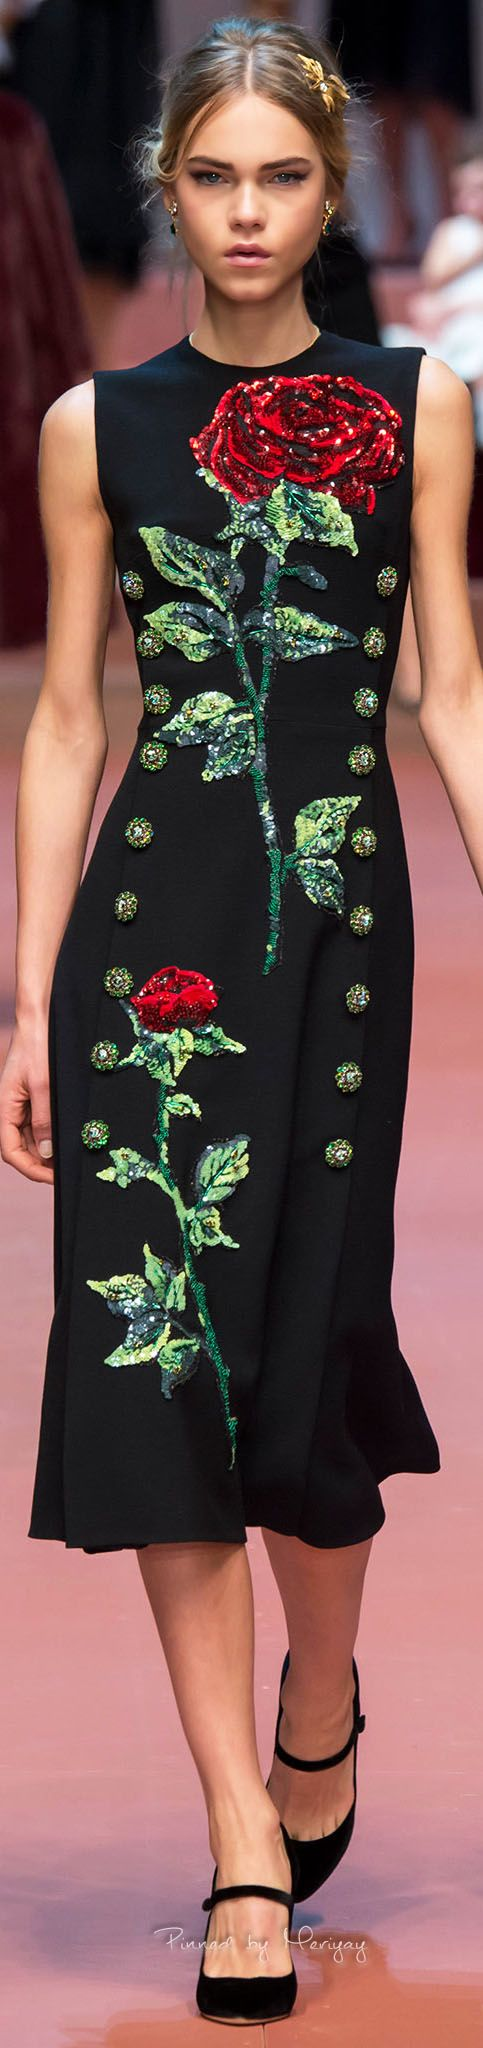 Dolce & Gabbana ~ Fall Black Midi Dress w Red Rose Applique, 2015.